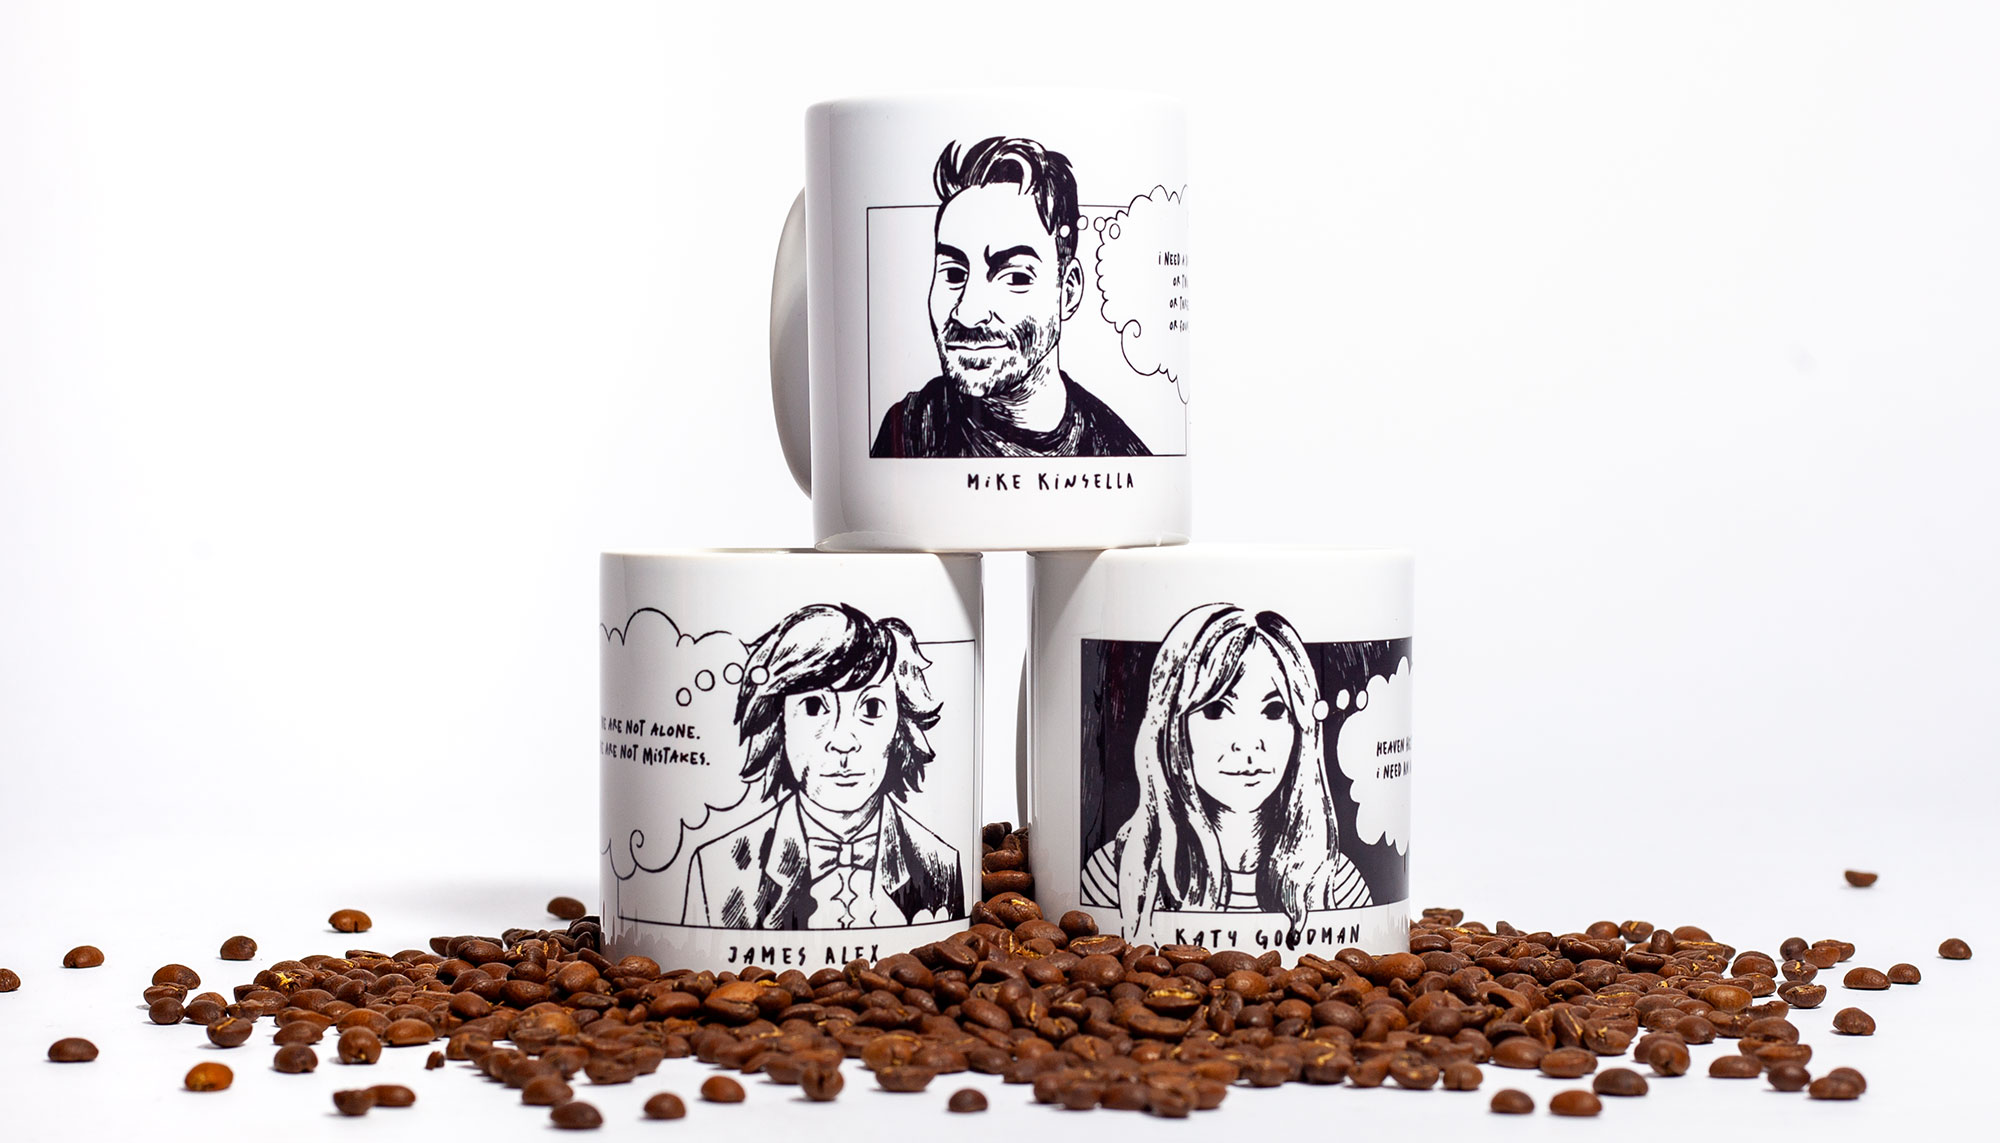 Introducing our Mugshots series - coffee mugs featuring PV greats - order yours today!